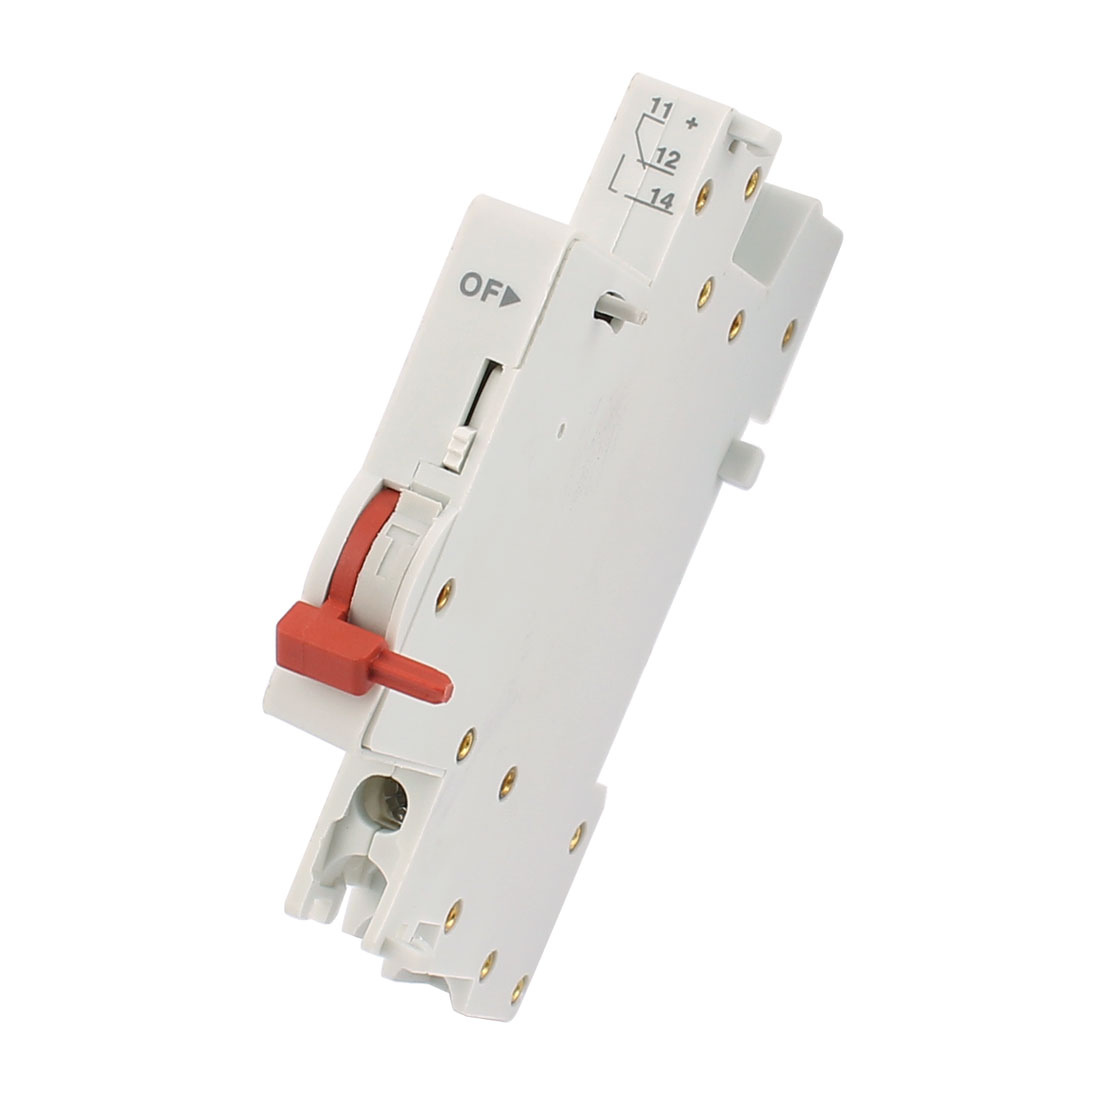 SPDT Leakage Protection OF Auxiliary Switch for DZ47S/C45 Circuit Breaker